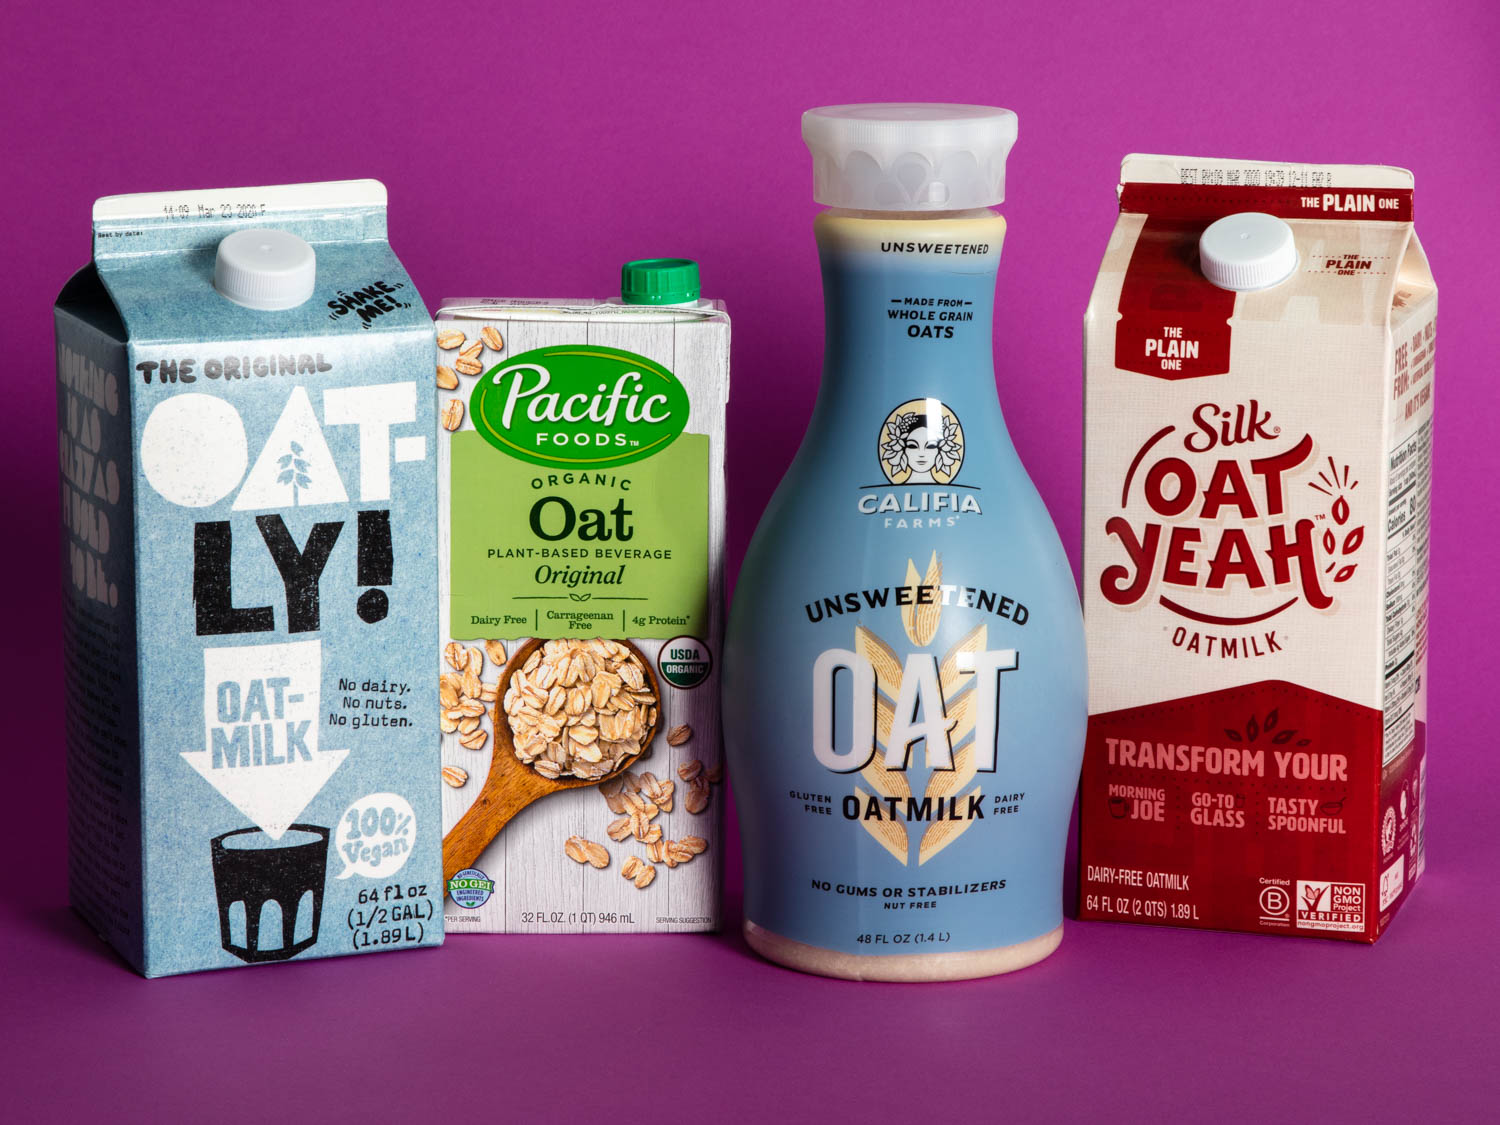 Four oat milk containers against purple background.